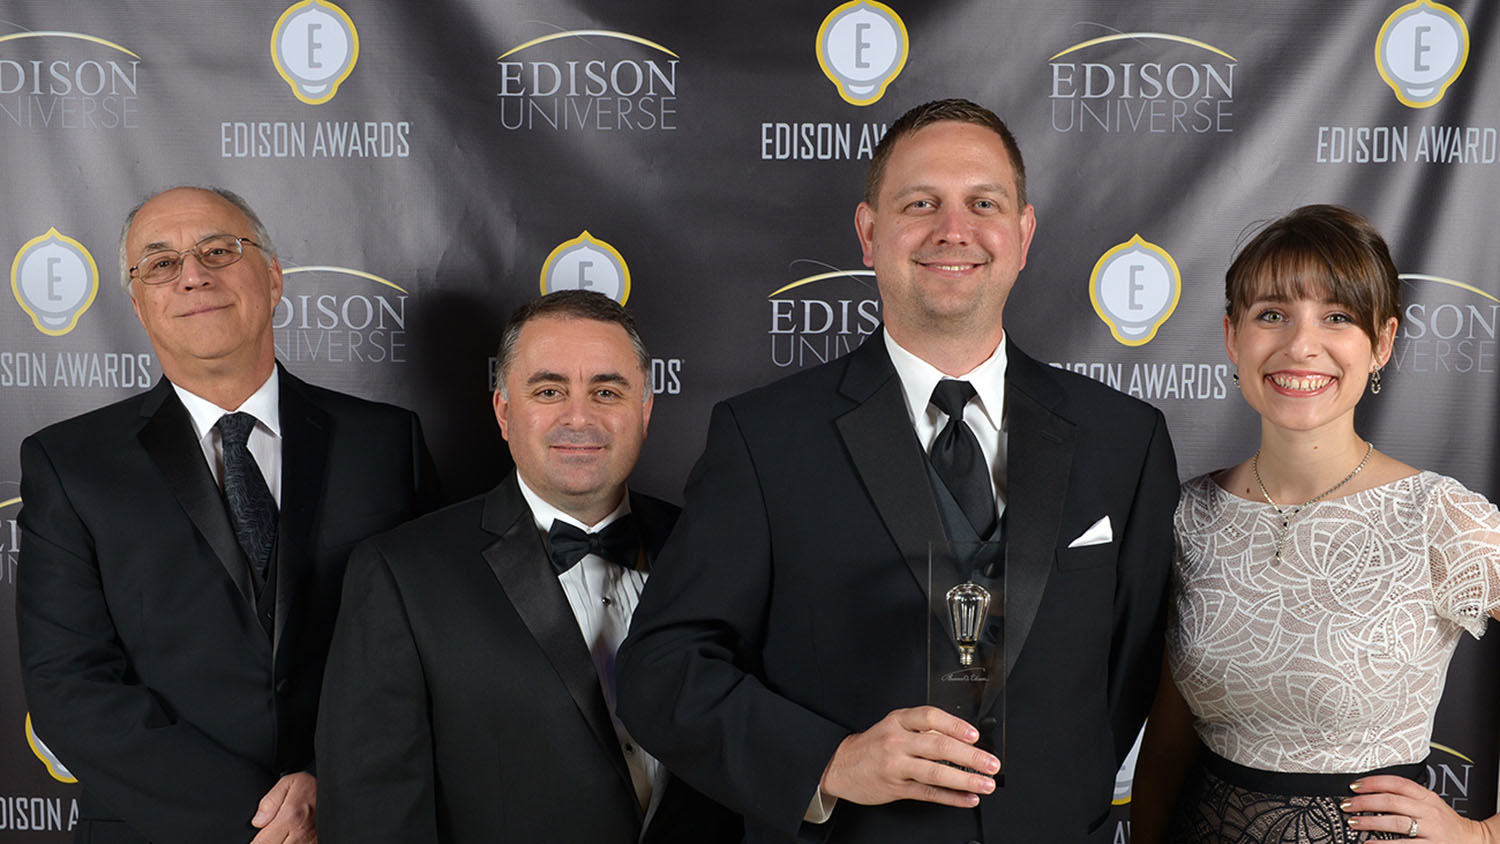 Josip Simunovic (left), Pablo Coronel, Michael Druga and Amanda Vargochik (right) at the 2015 Edison Innovation Awards.